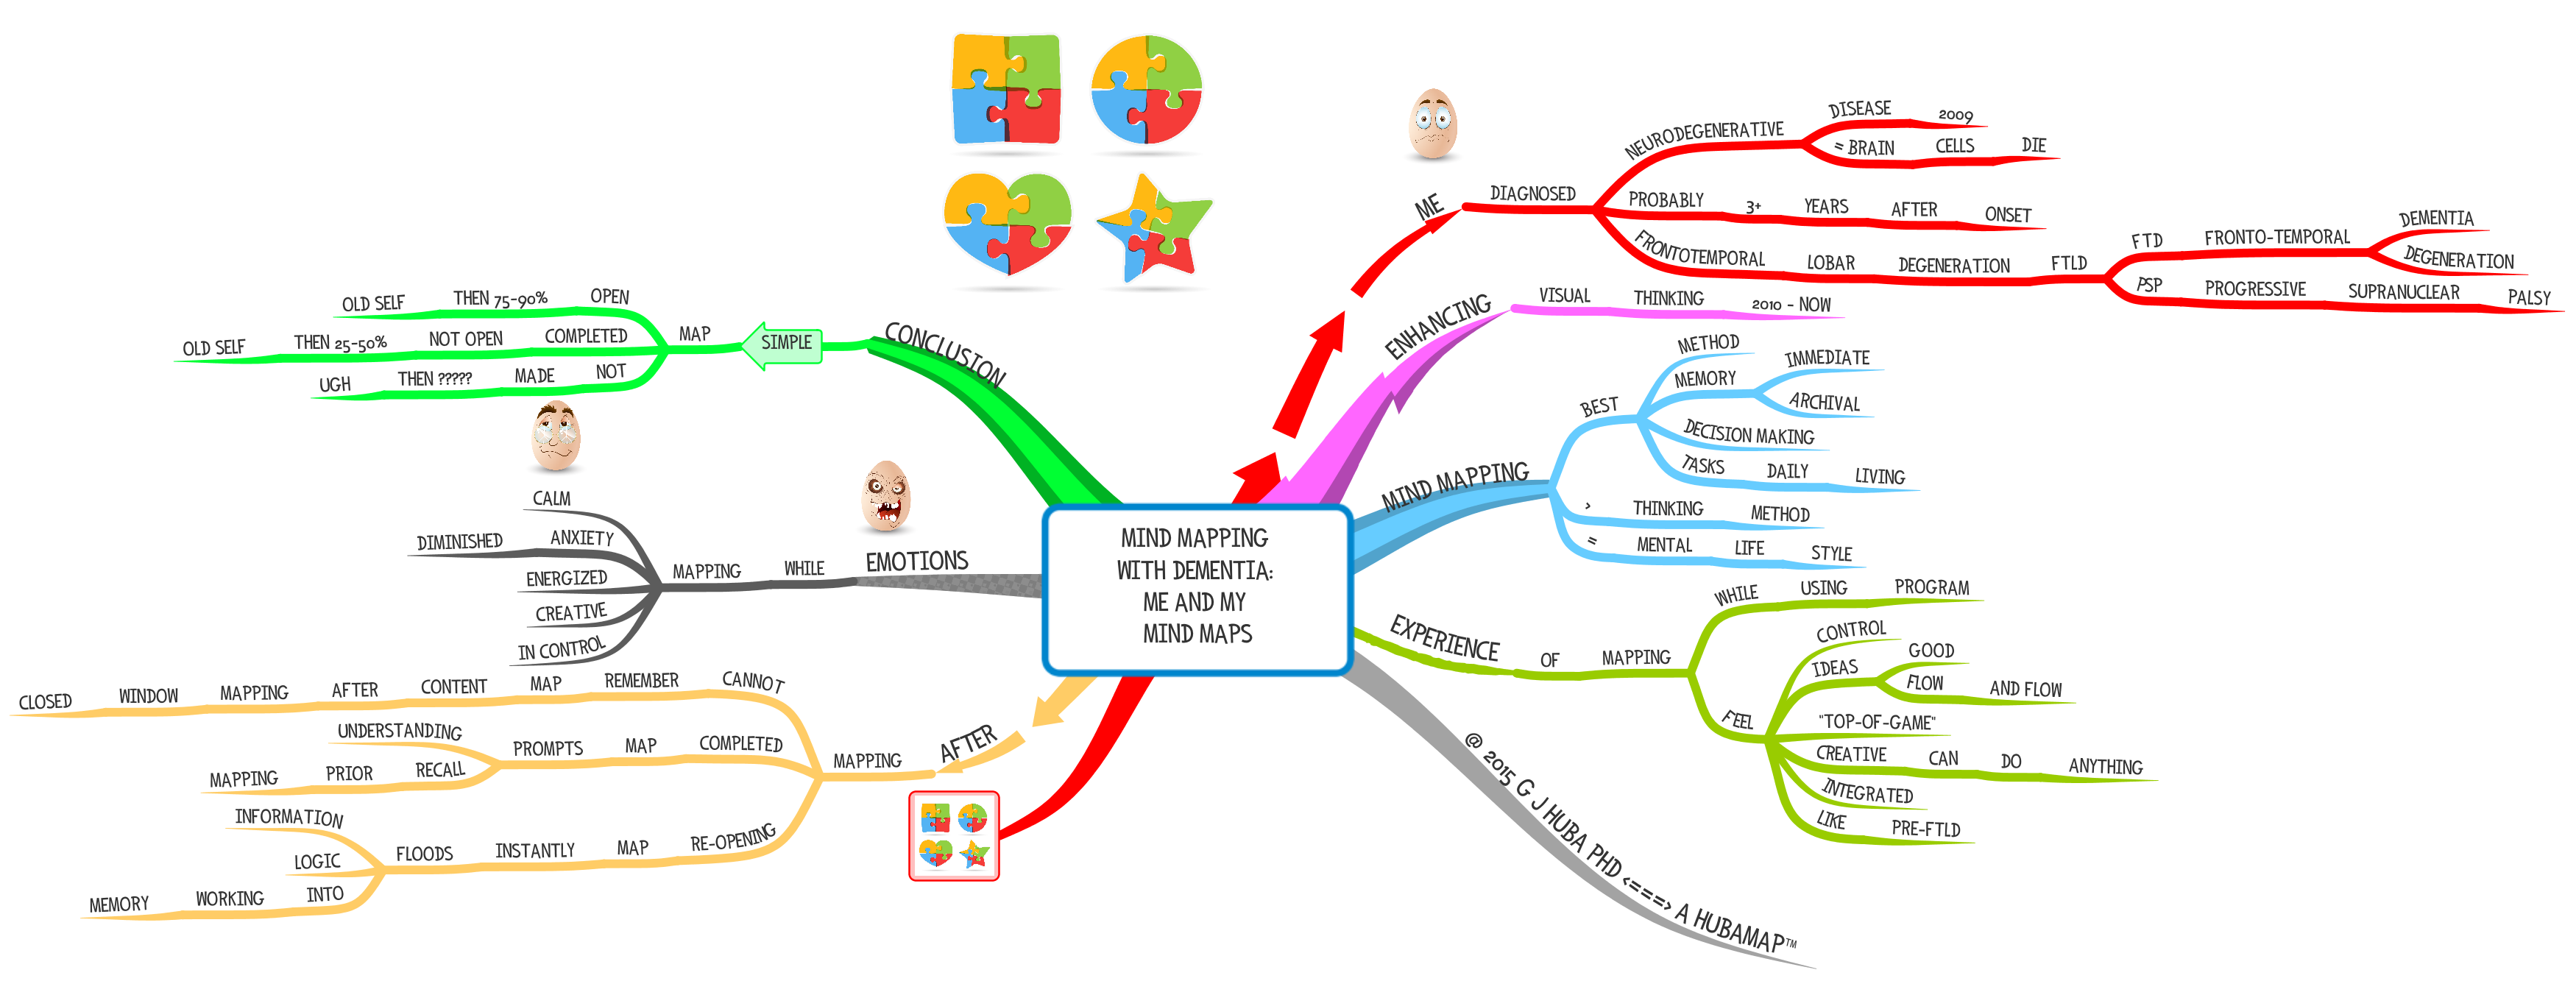 Mind Mapping with Dementia Me and My Mind Maps